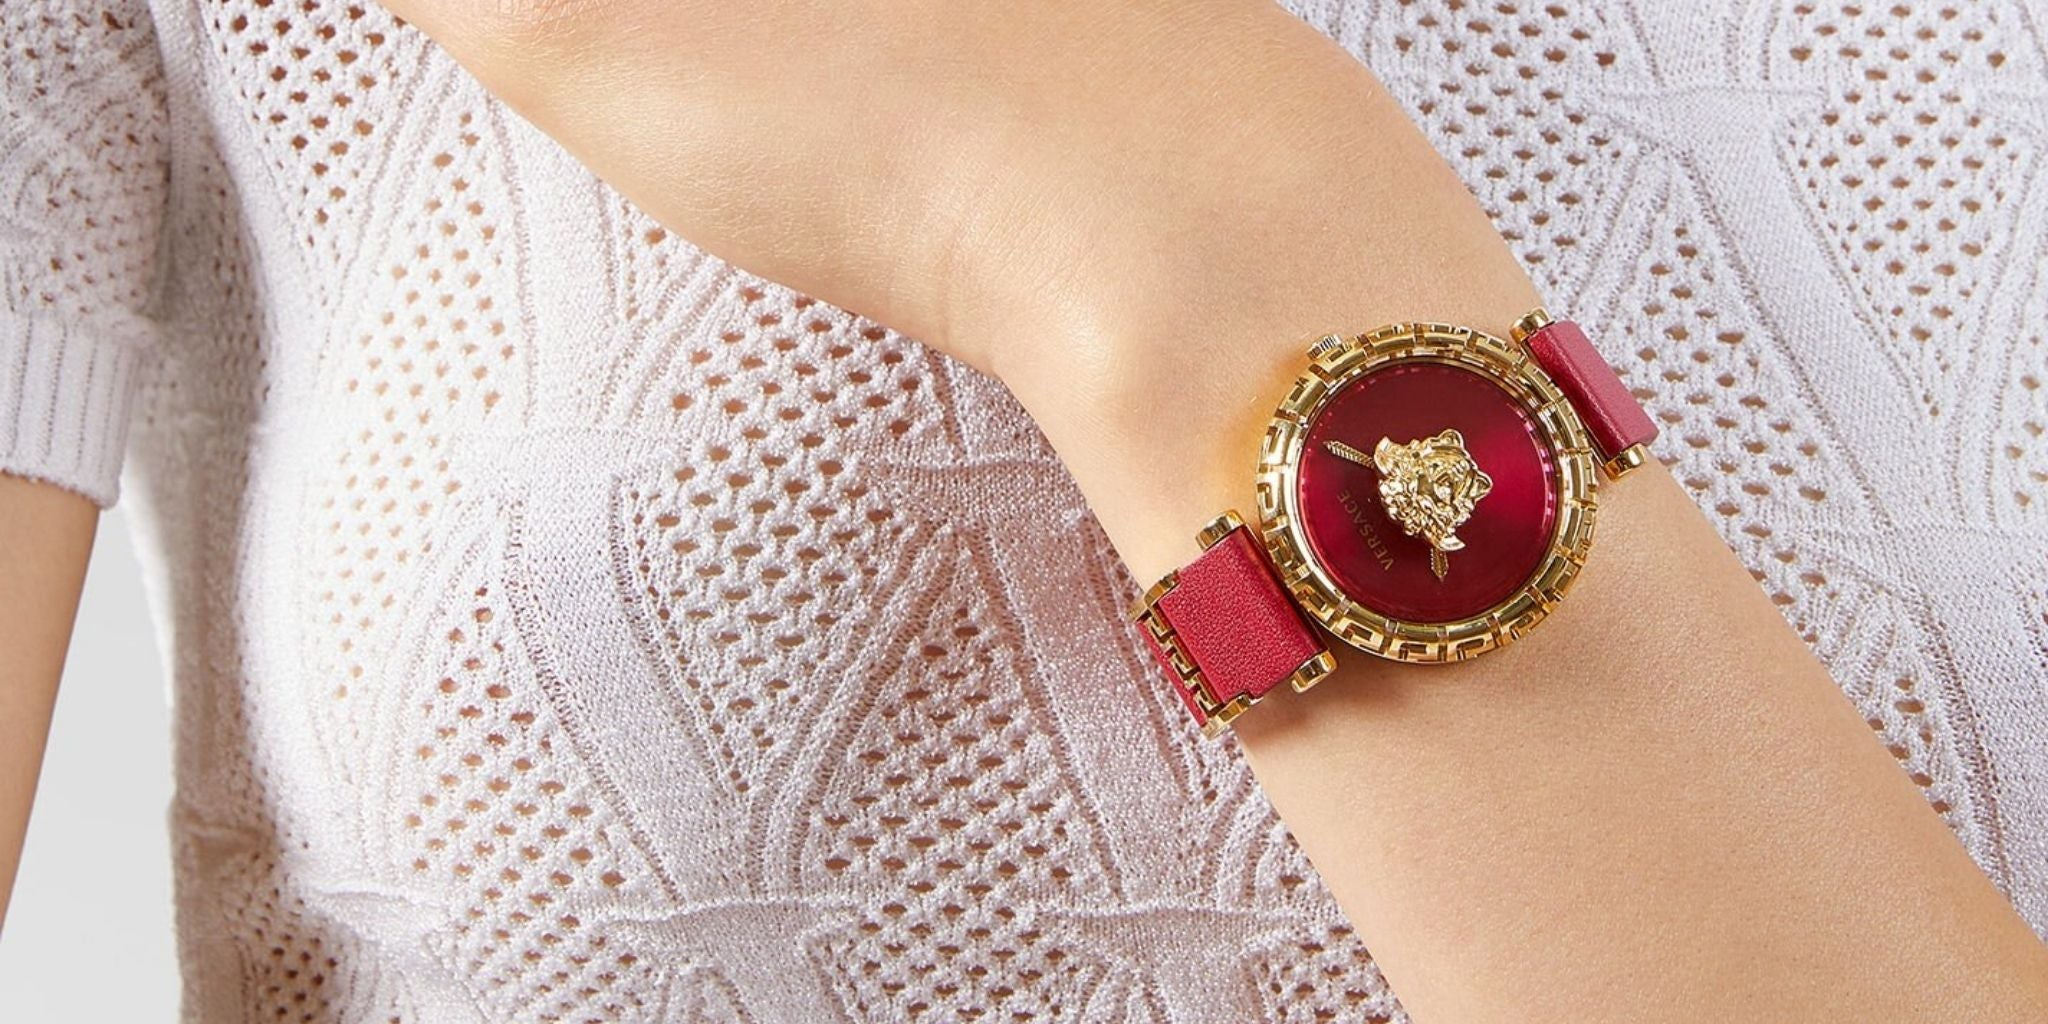 Versace Palazzo Empire Red, Best Watch Brands for Women, Best Watches For Women, Best Women's Watches, Best Women's Watches 2020, Ladies Watches, Quality Women's Watches,